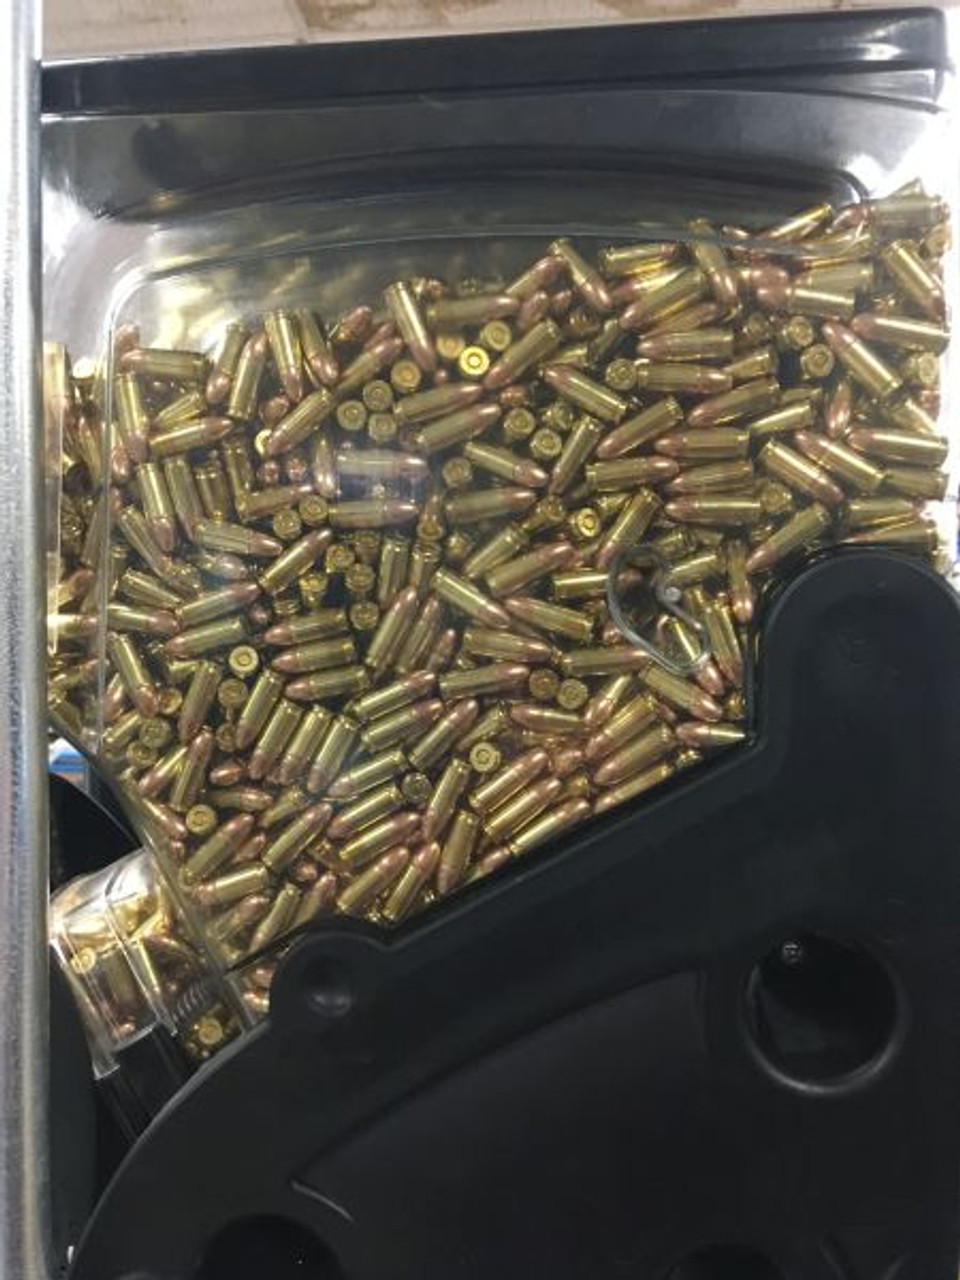 Facebook Ammunition Special - 9mm - 10 pounds